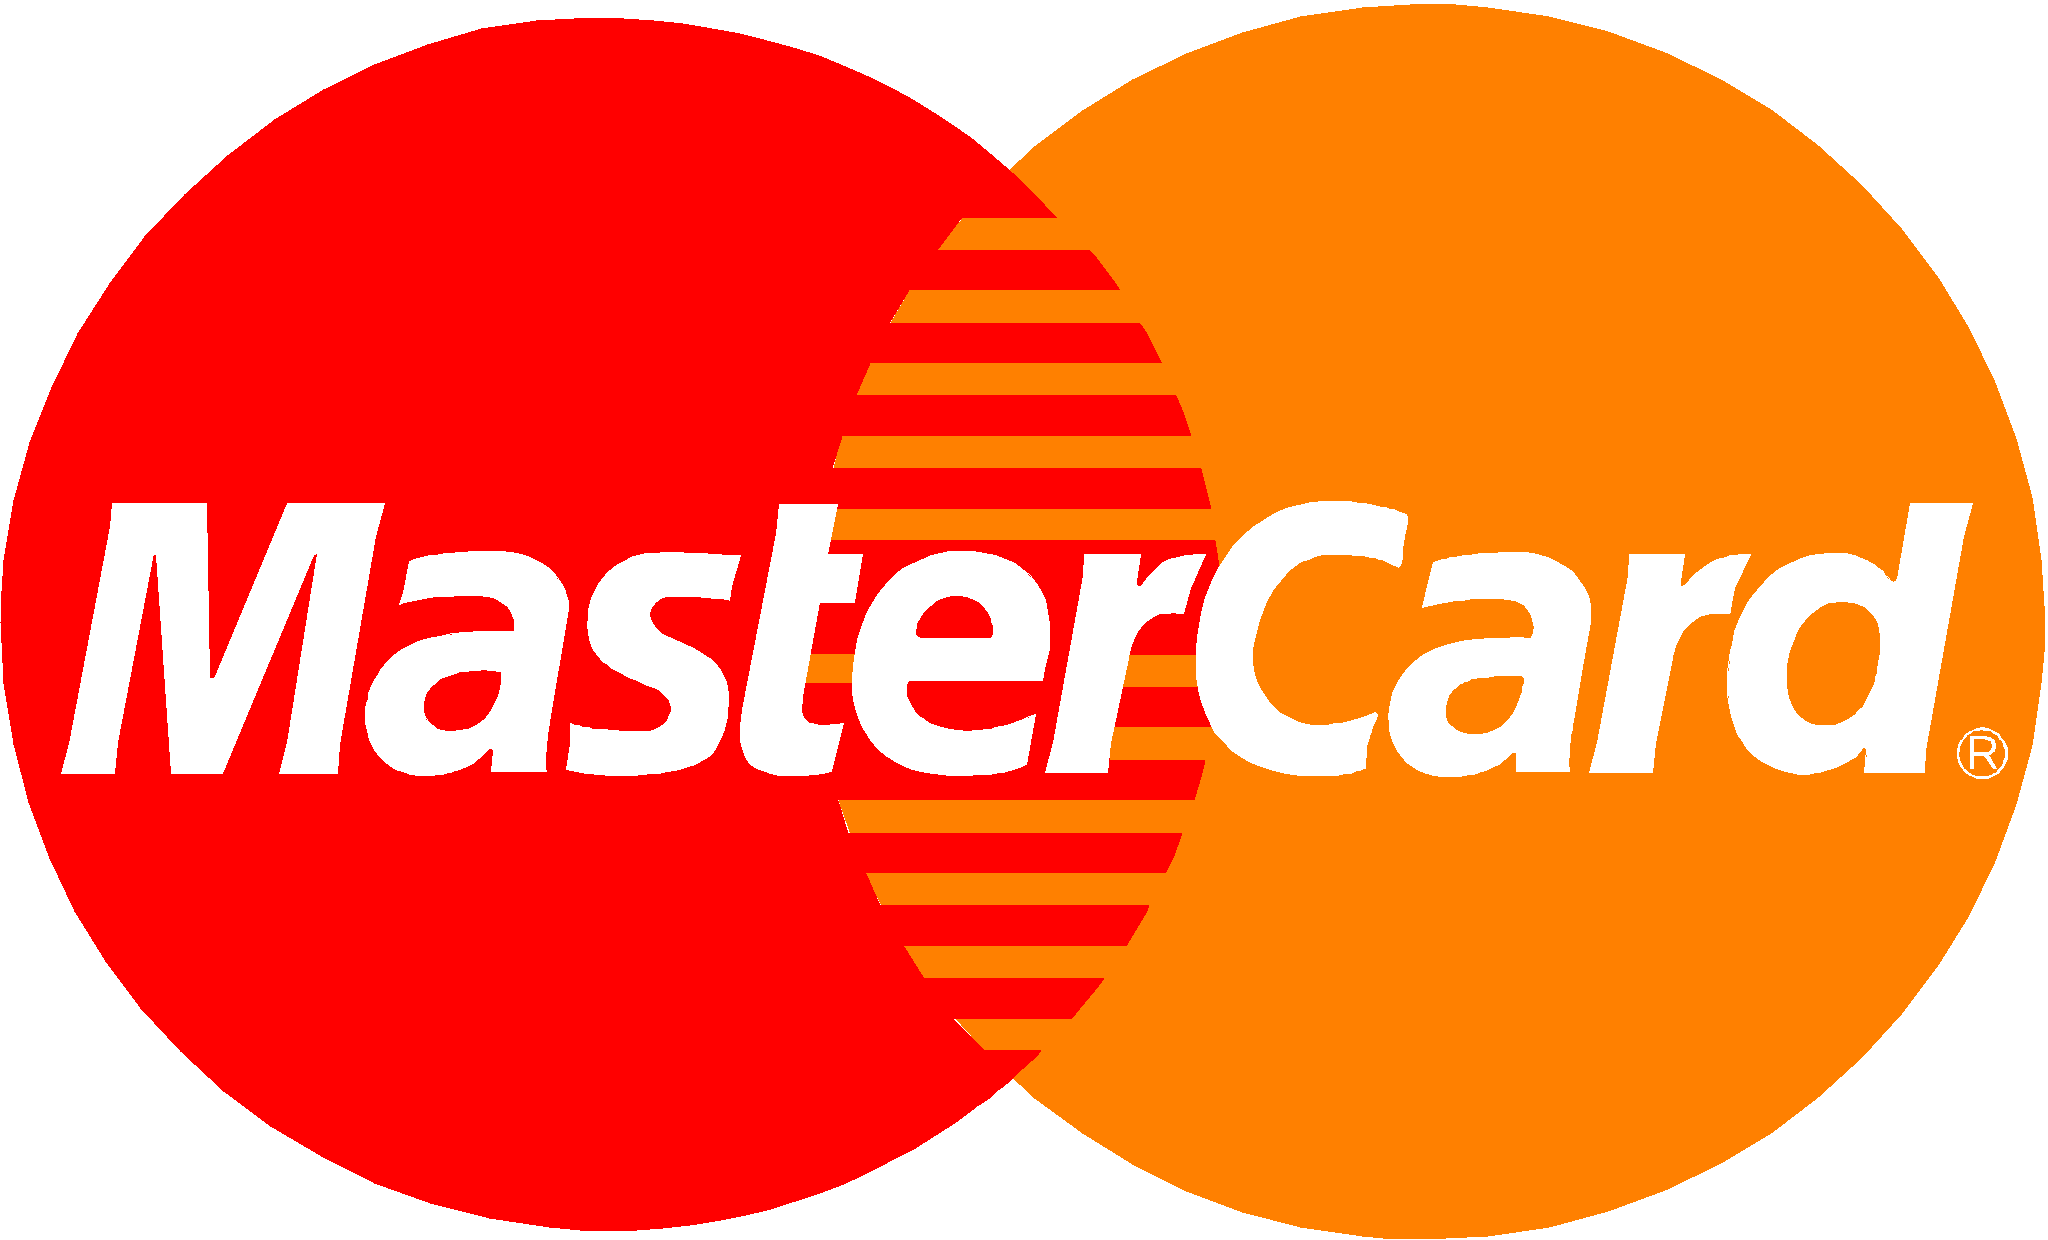 Clipart File PNG Mastercard 6940